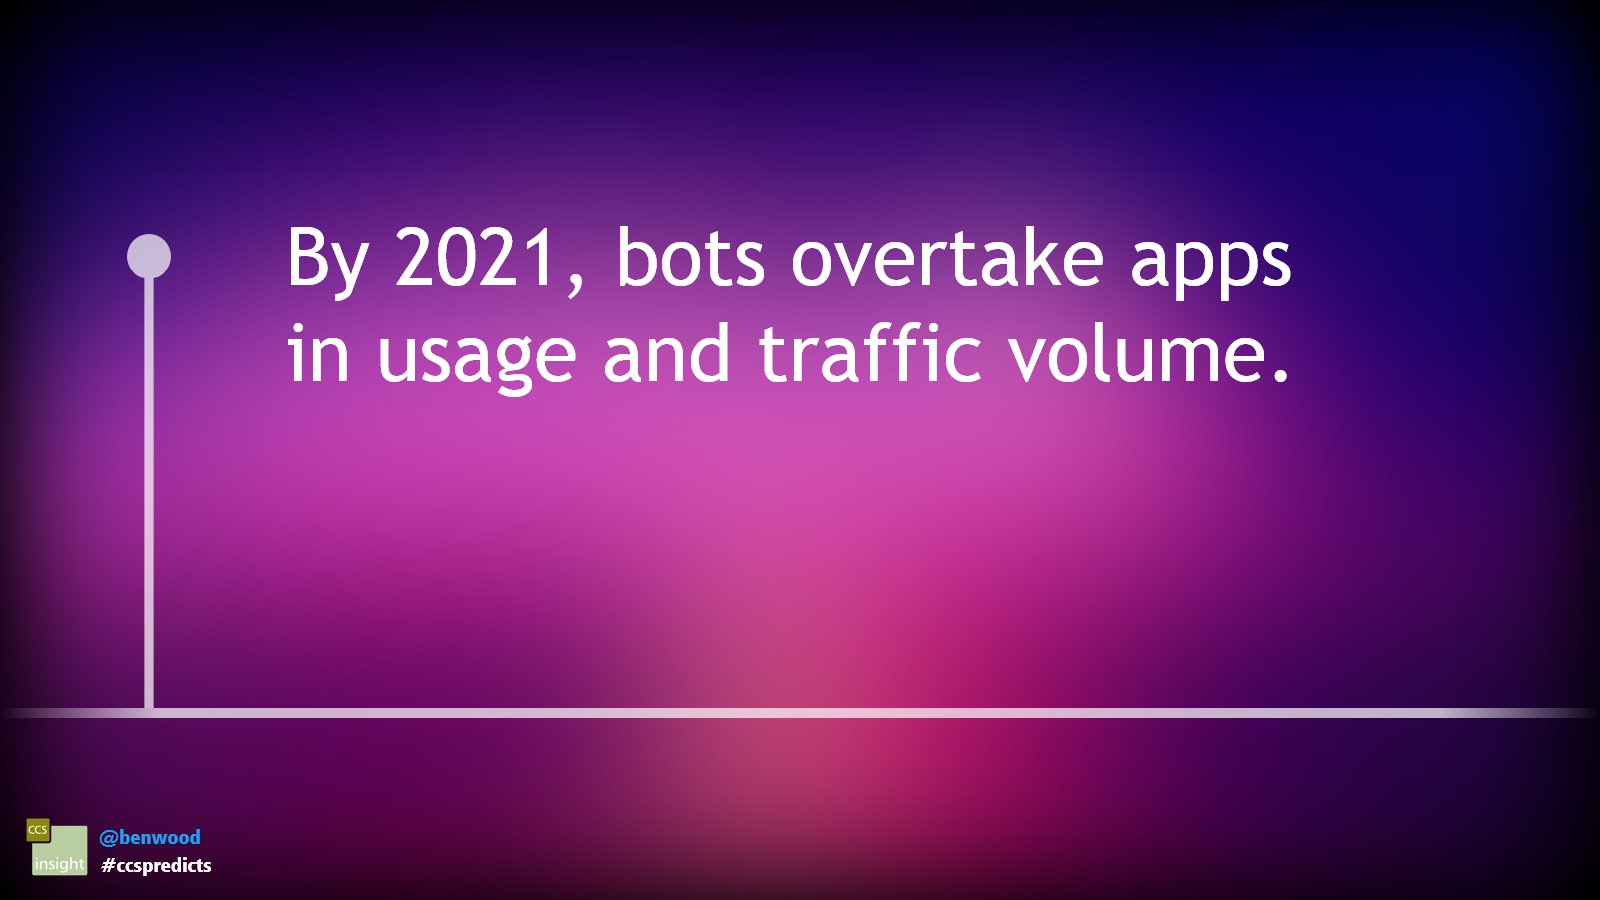 By 2021, bots overtake apps in usage and traffic volume #ccspredicts https://t.co/R7eOr1fDAD